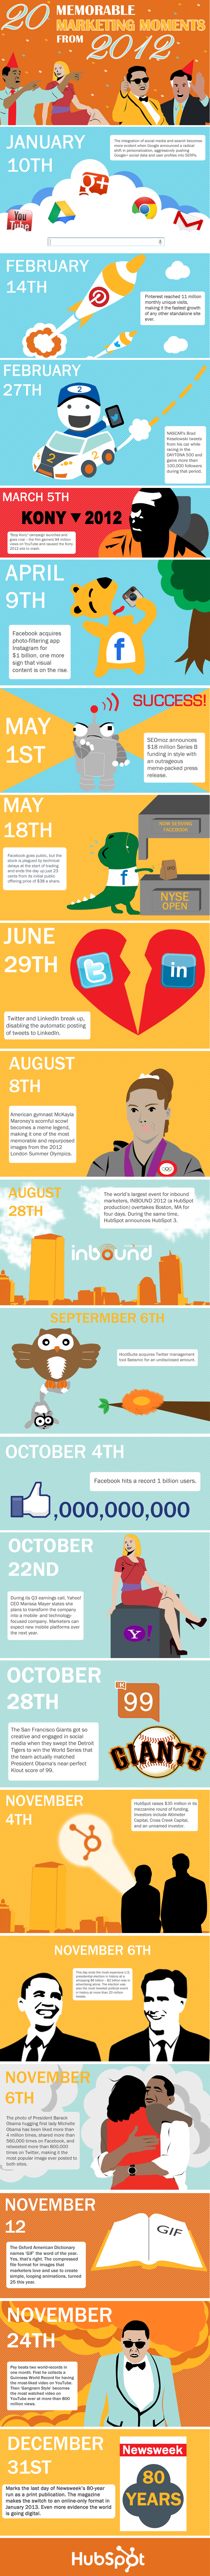 20 Memorable Marketing Moments of 2012 HubSpot Infographic